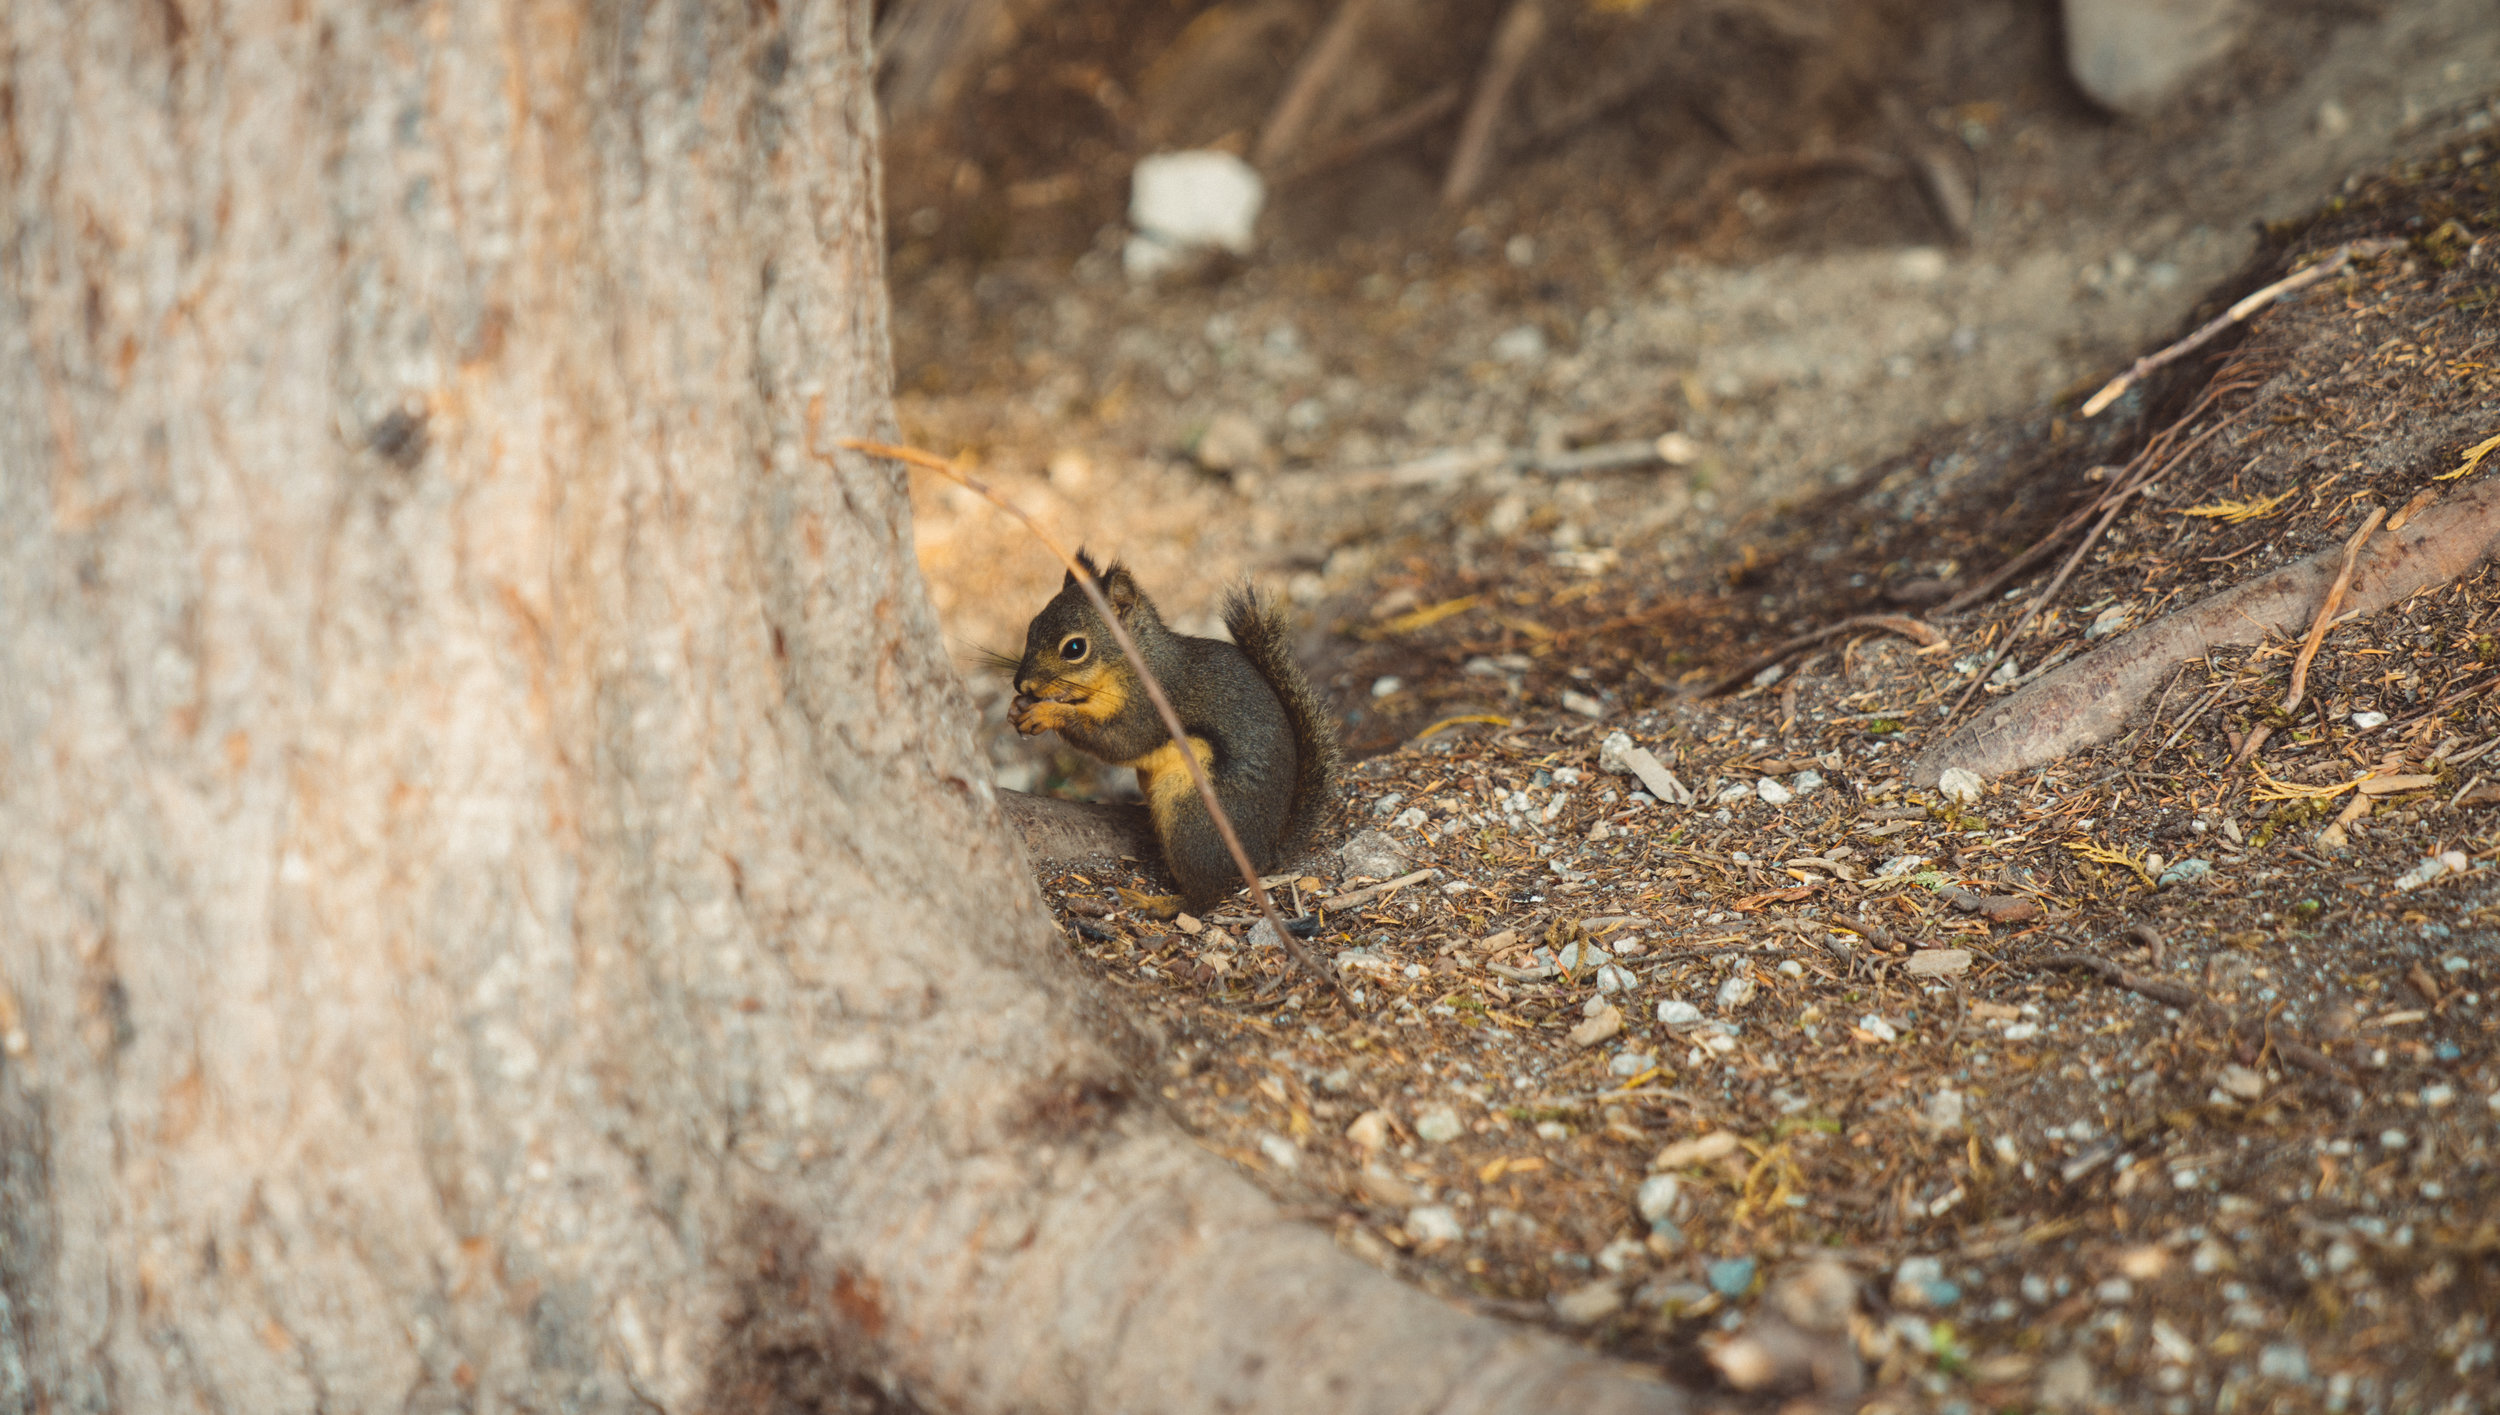 These little chipmunks (or is this a red squirrel?) were everywhere scrounging for scraps.